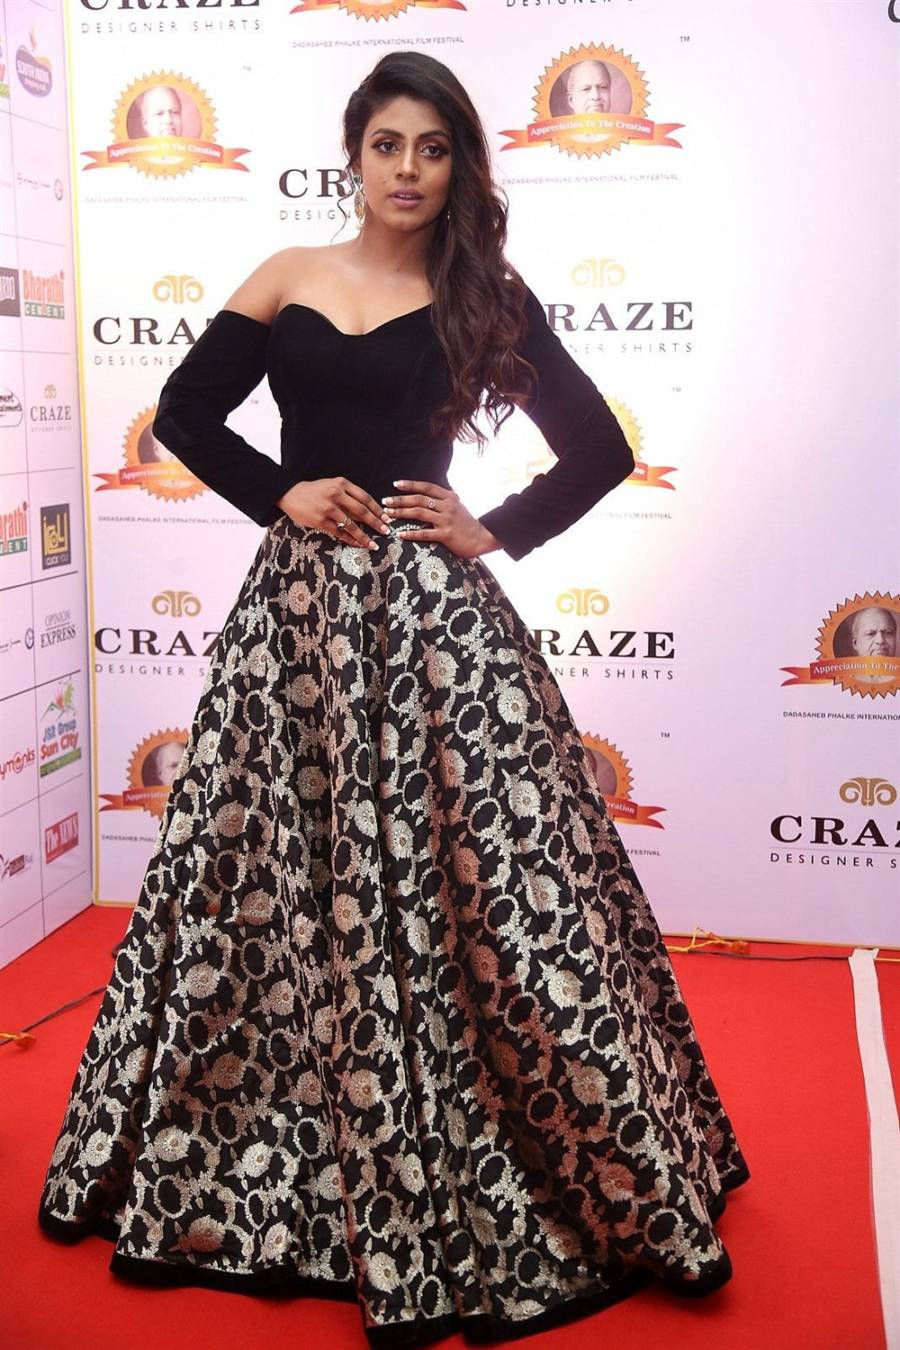 Tamil Actress Iniya in Black Dress at Dadasaheb Phalke Awards